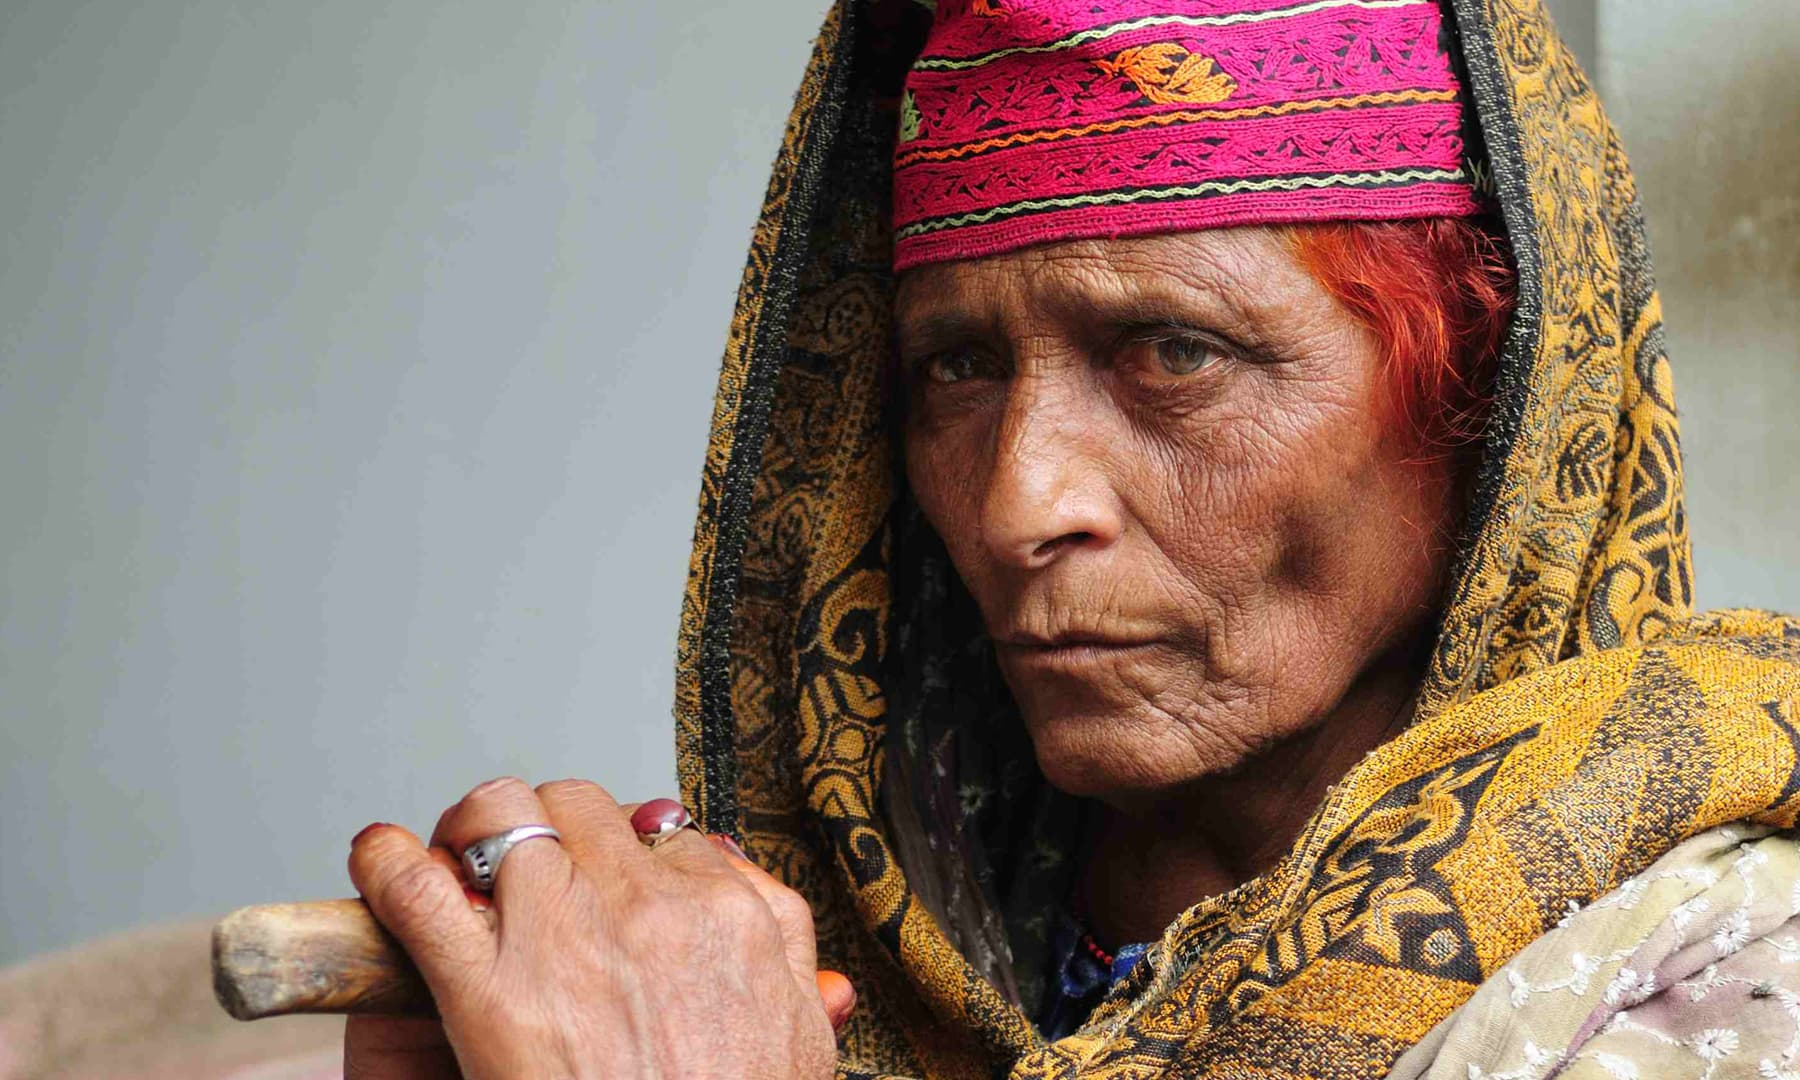 An old Kashmiri woman in Keran near Sharda | Tapu Javeri, White Star